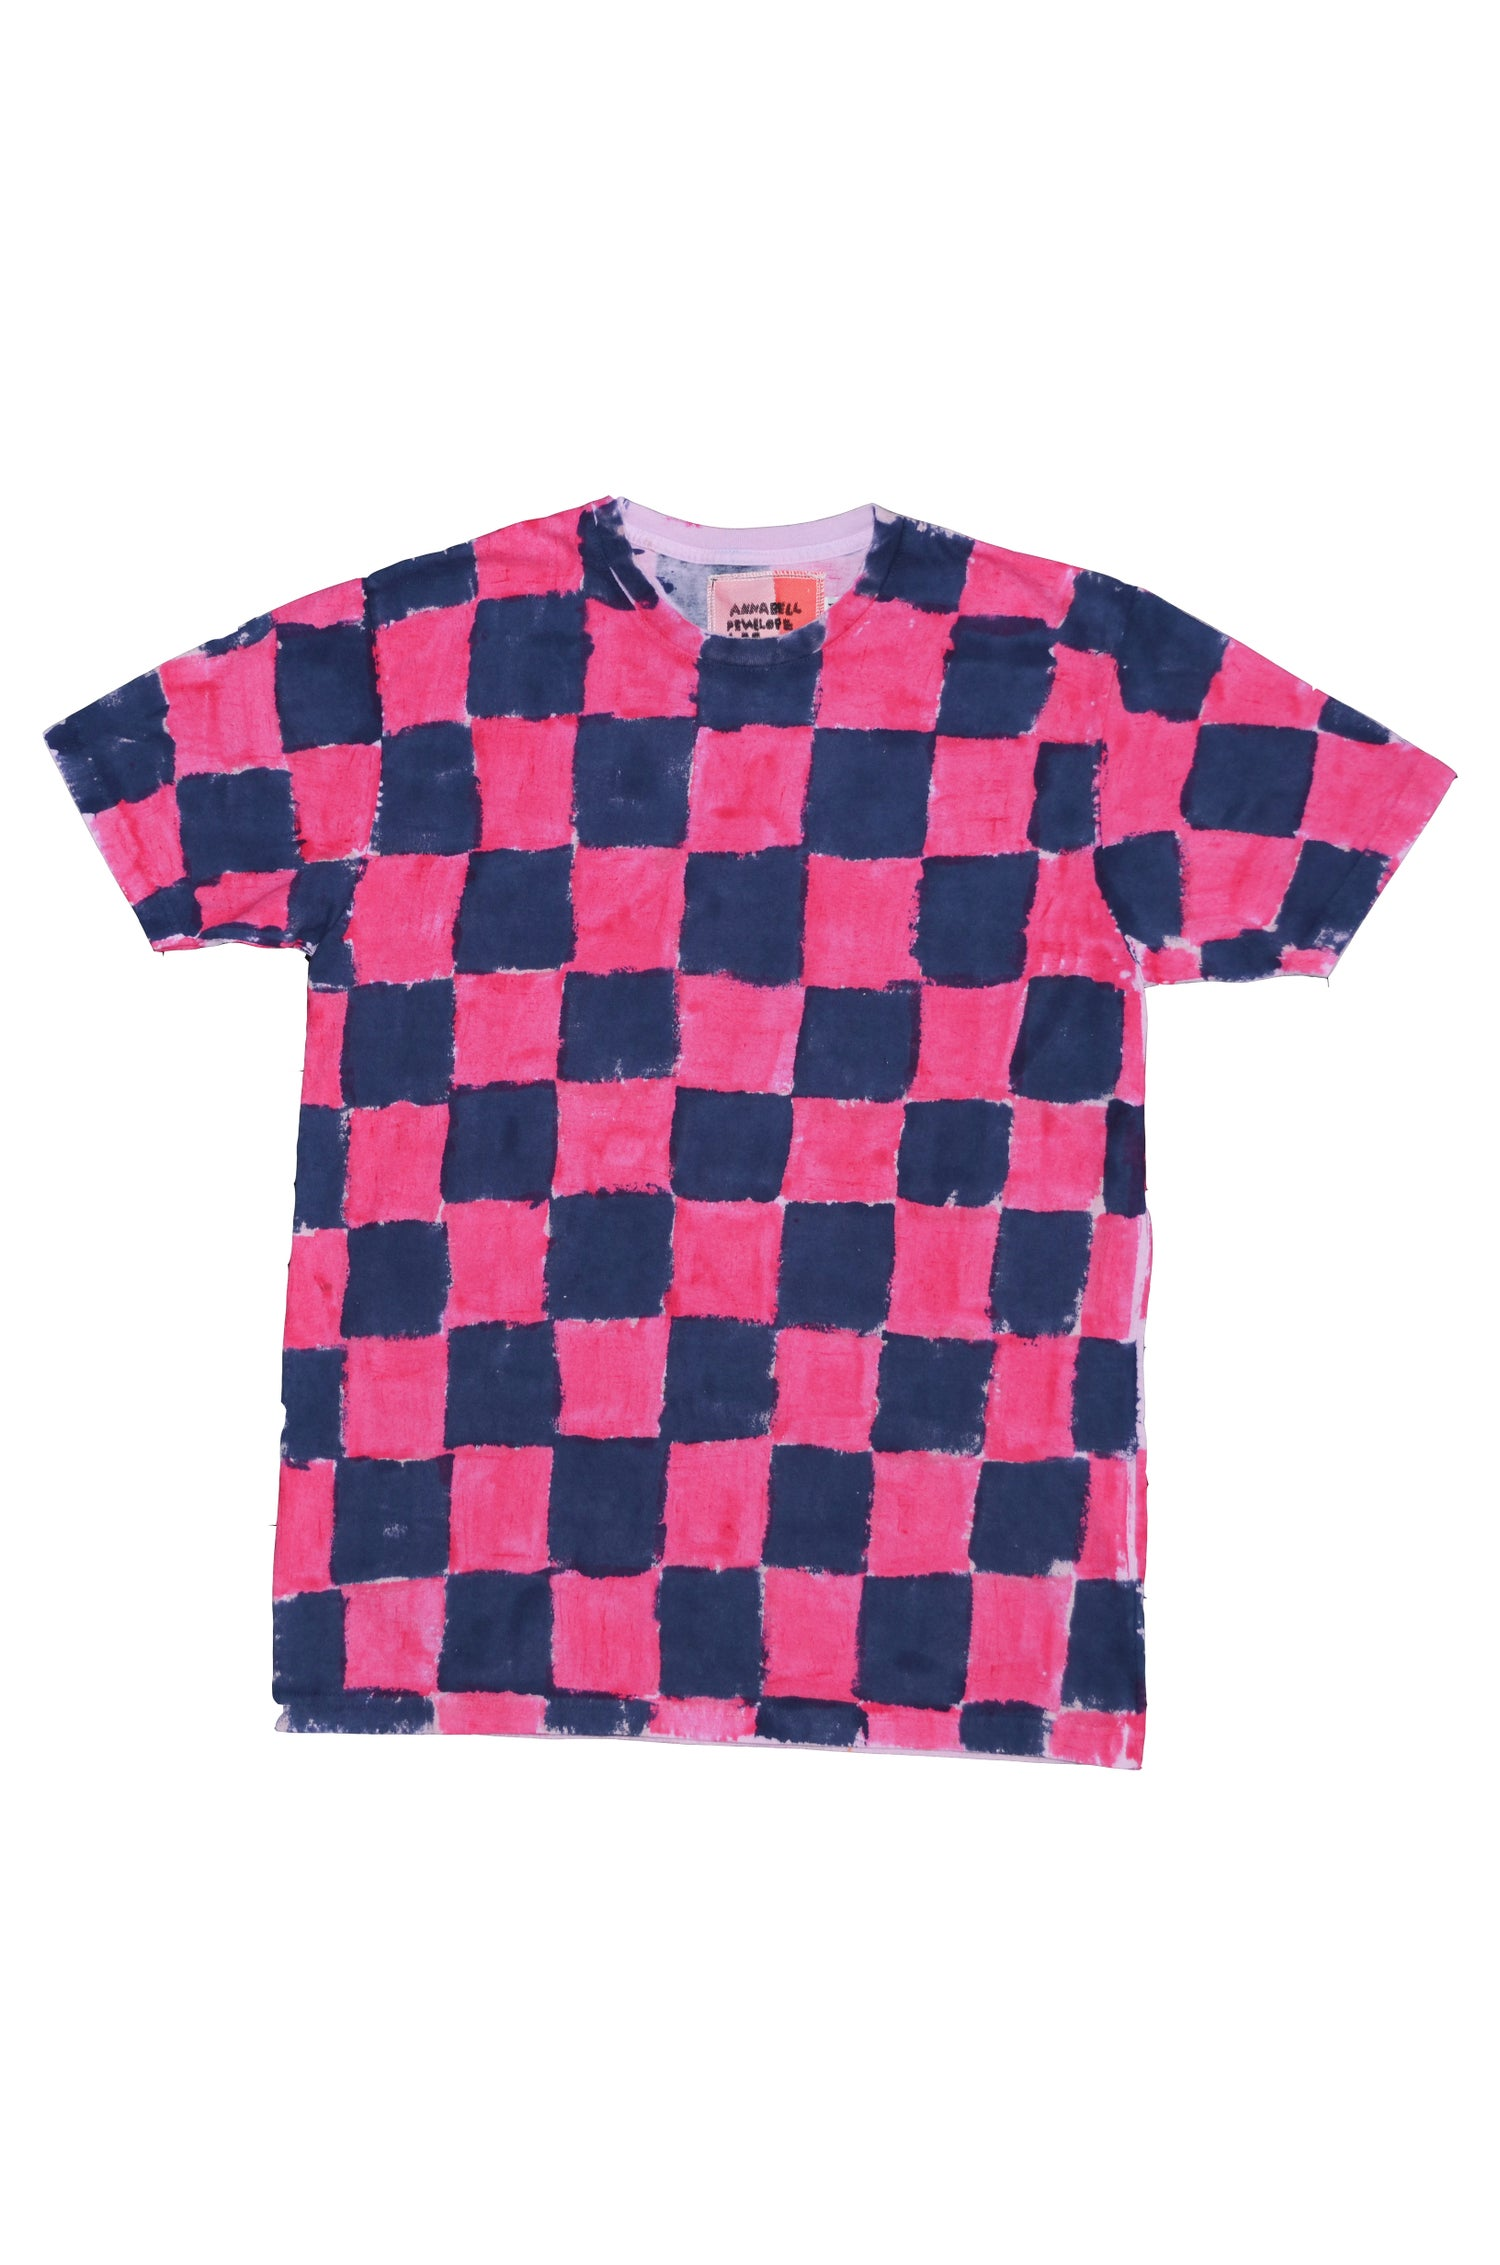 Image of hot pink and navy M